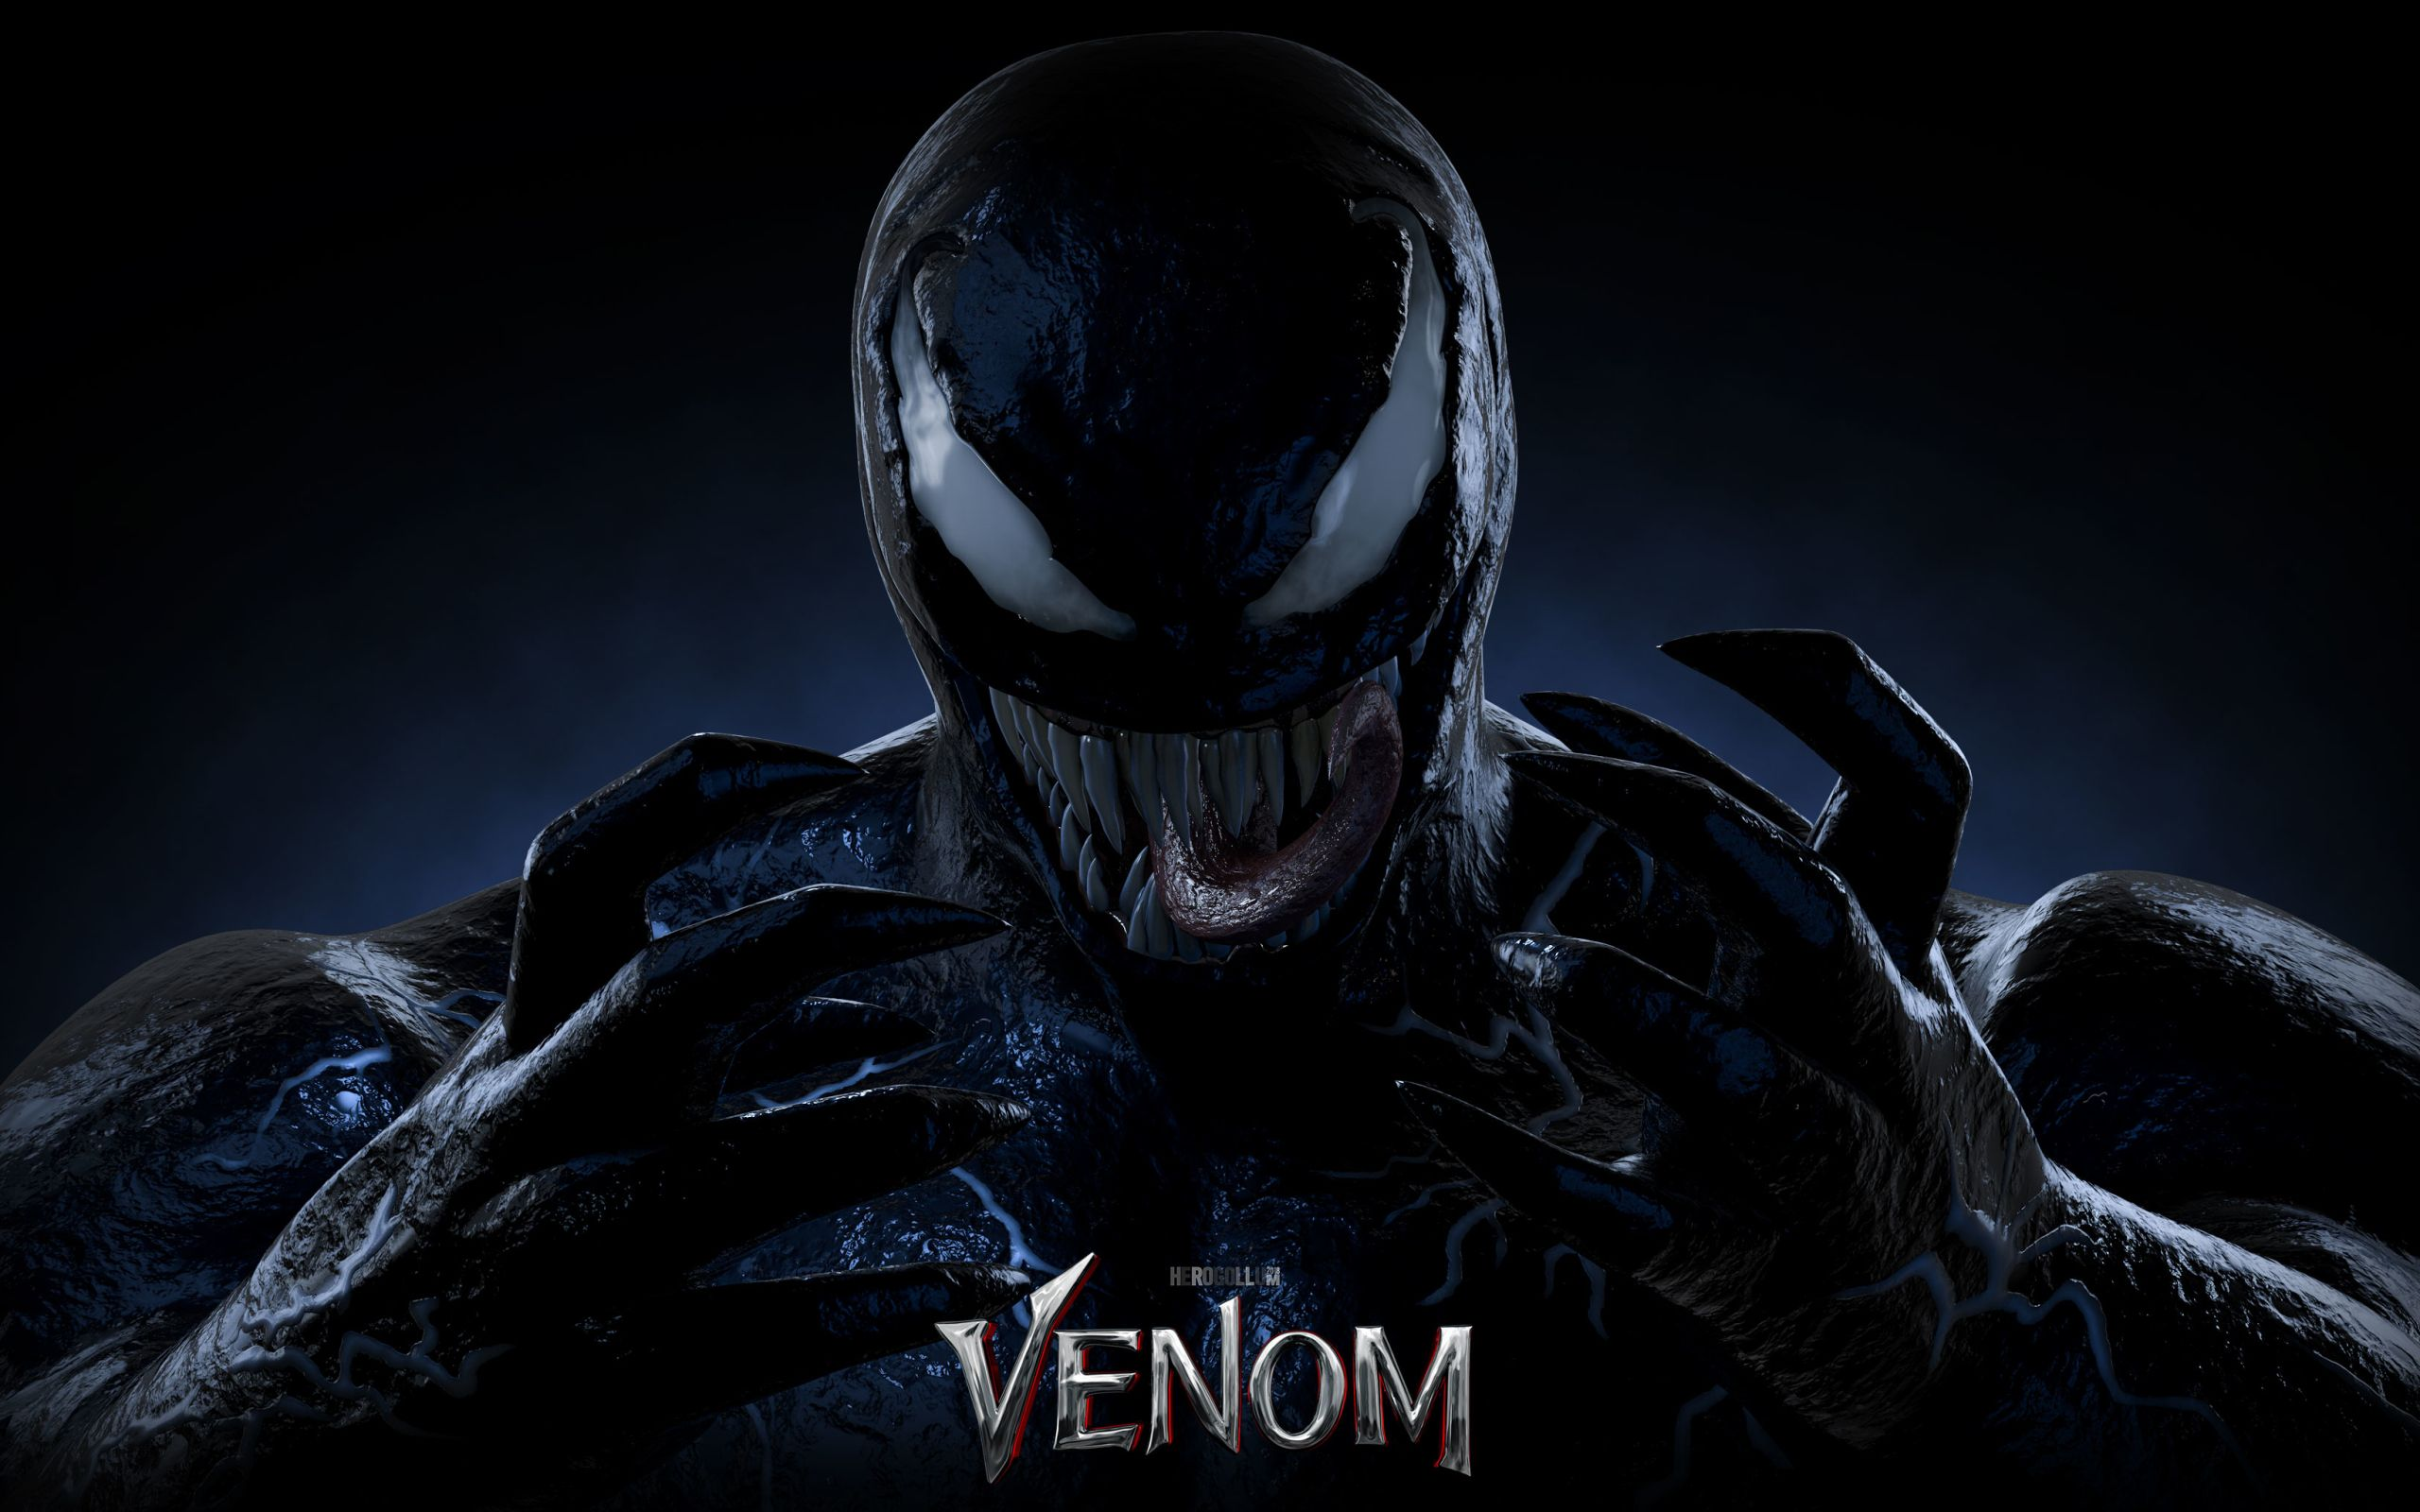 Venom Movie Wallpapers Top Free Venom Movie Backgrounds